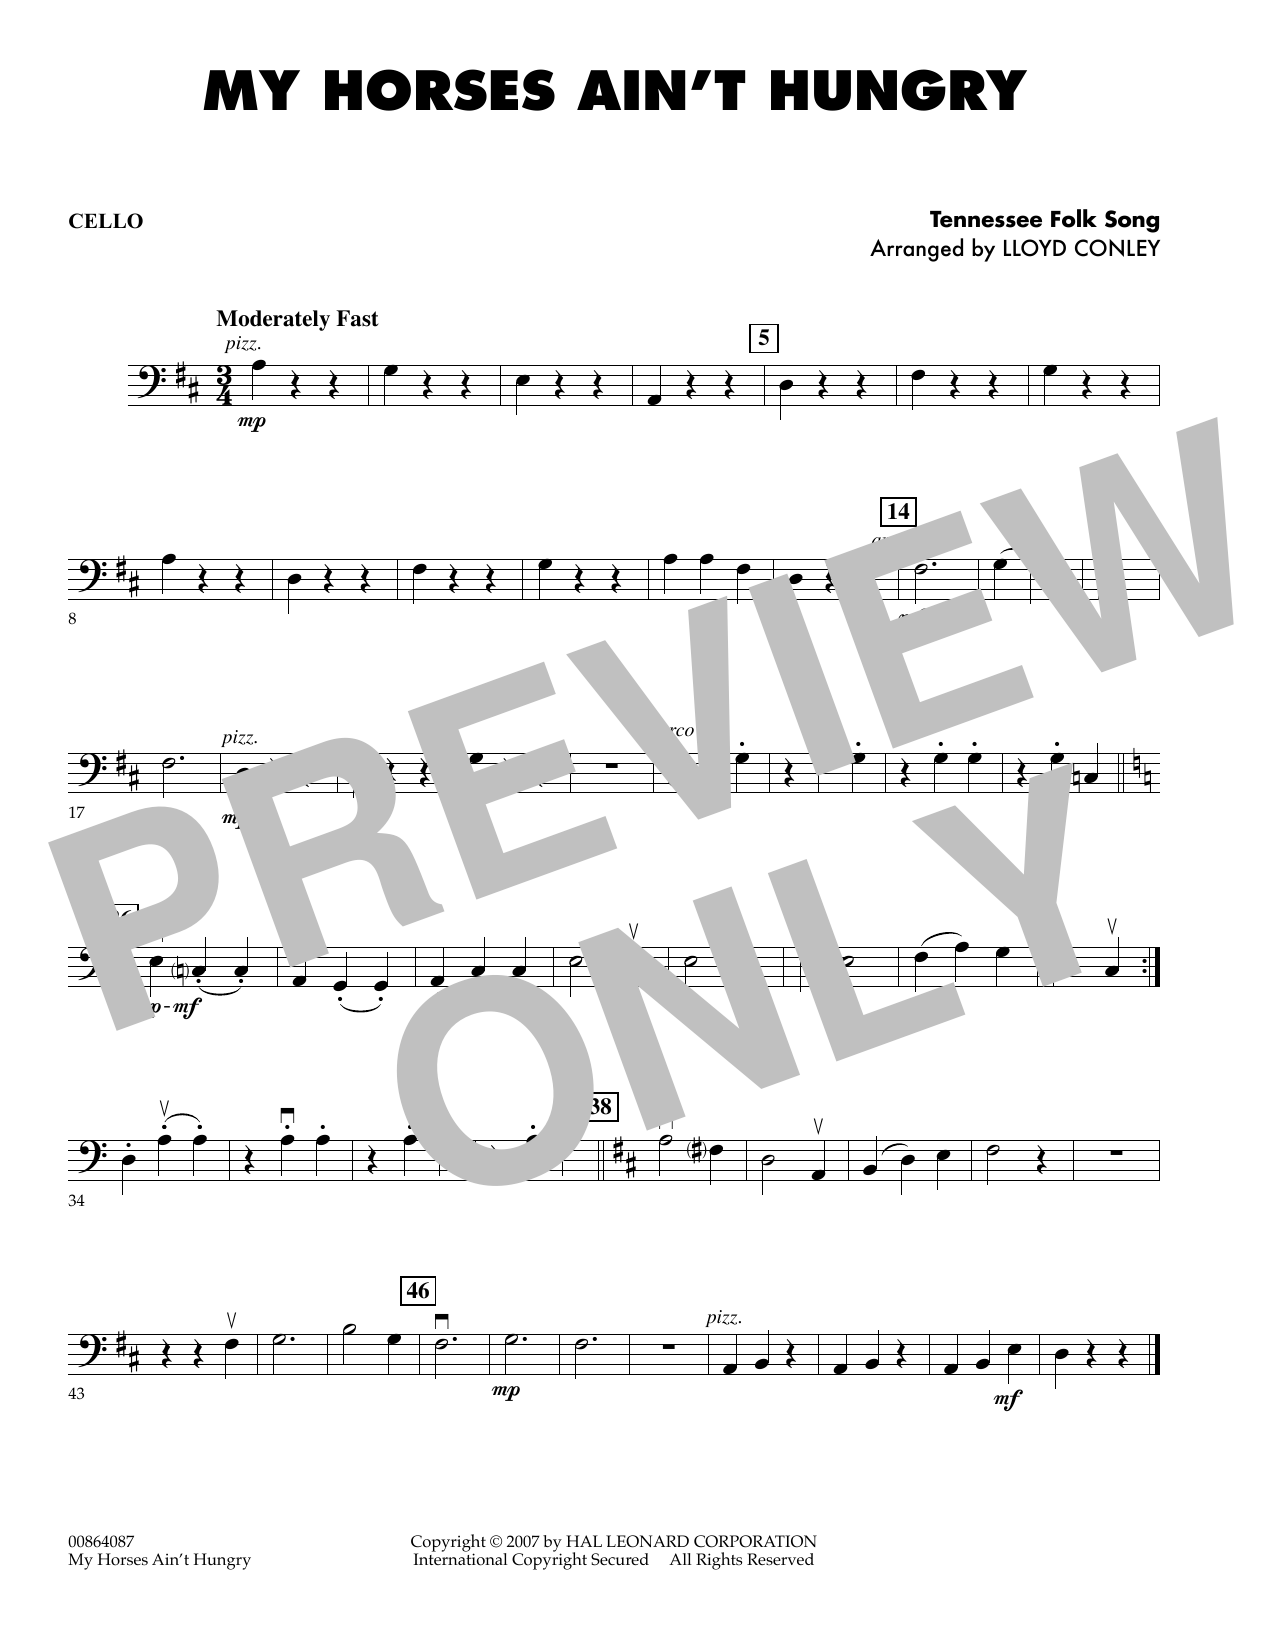 My Horses Ain't Hungry - Cello sheet music